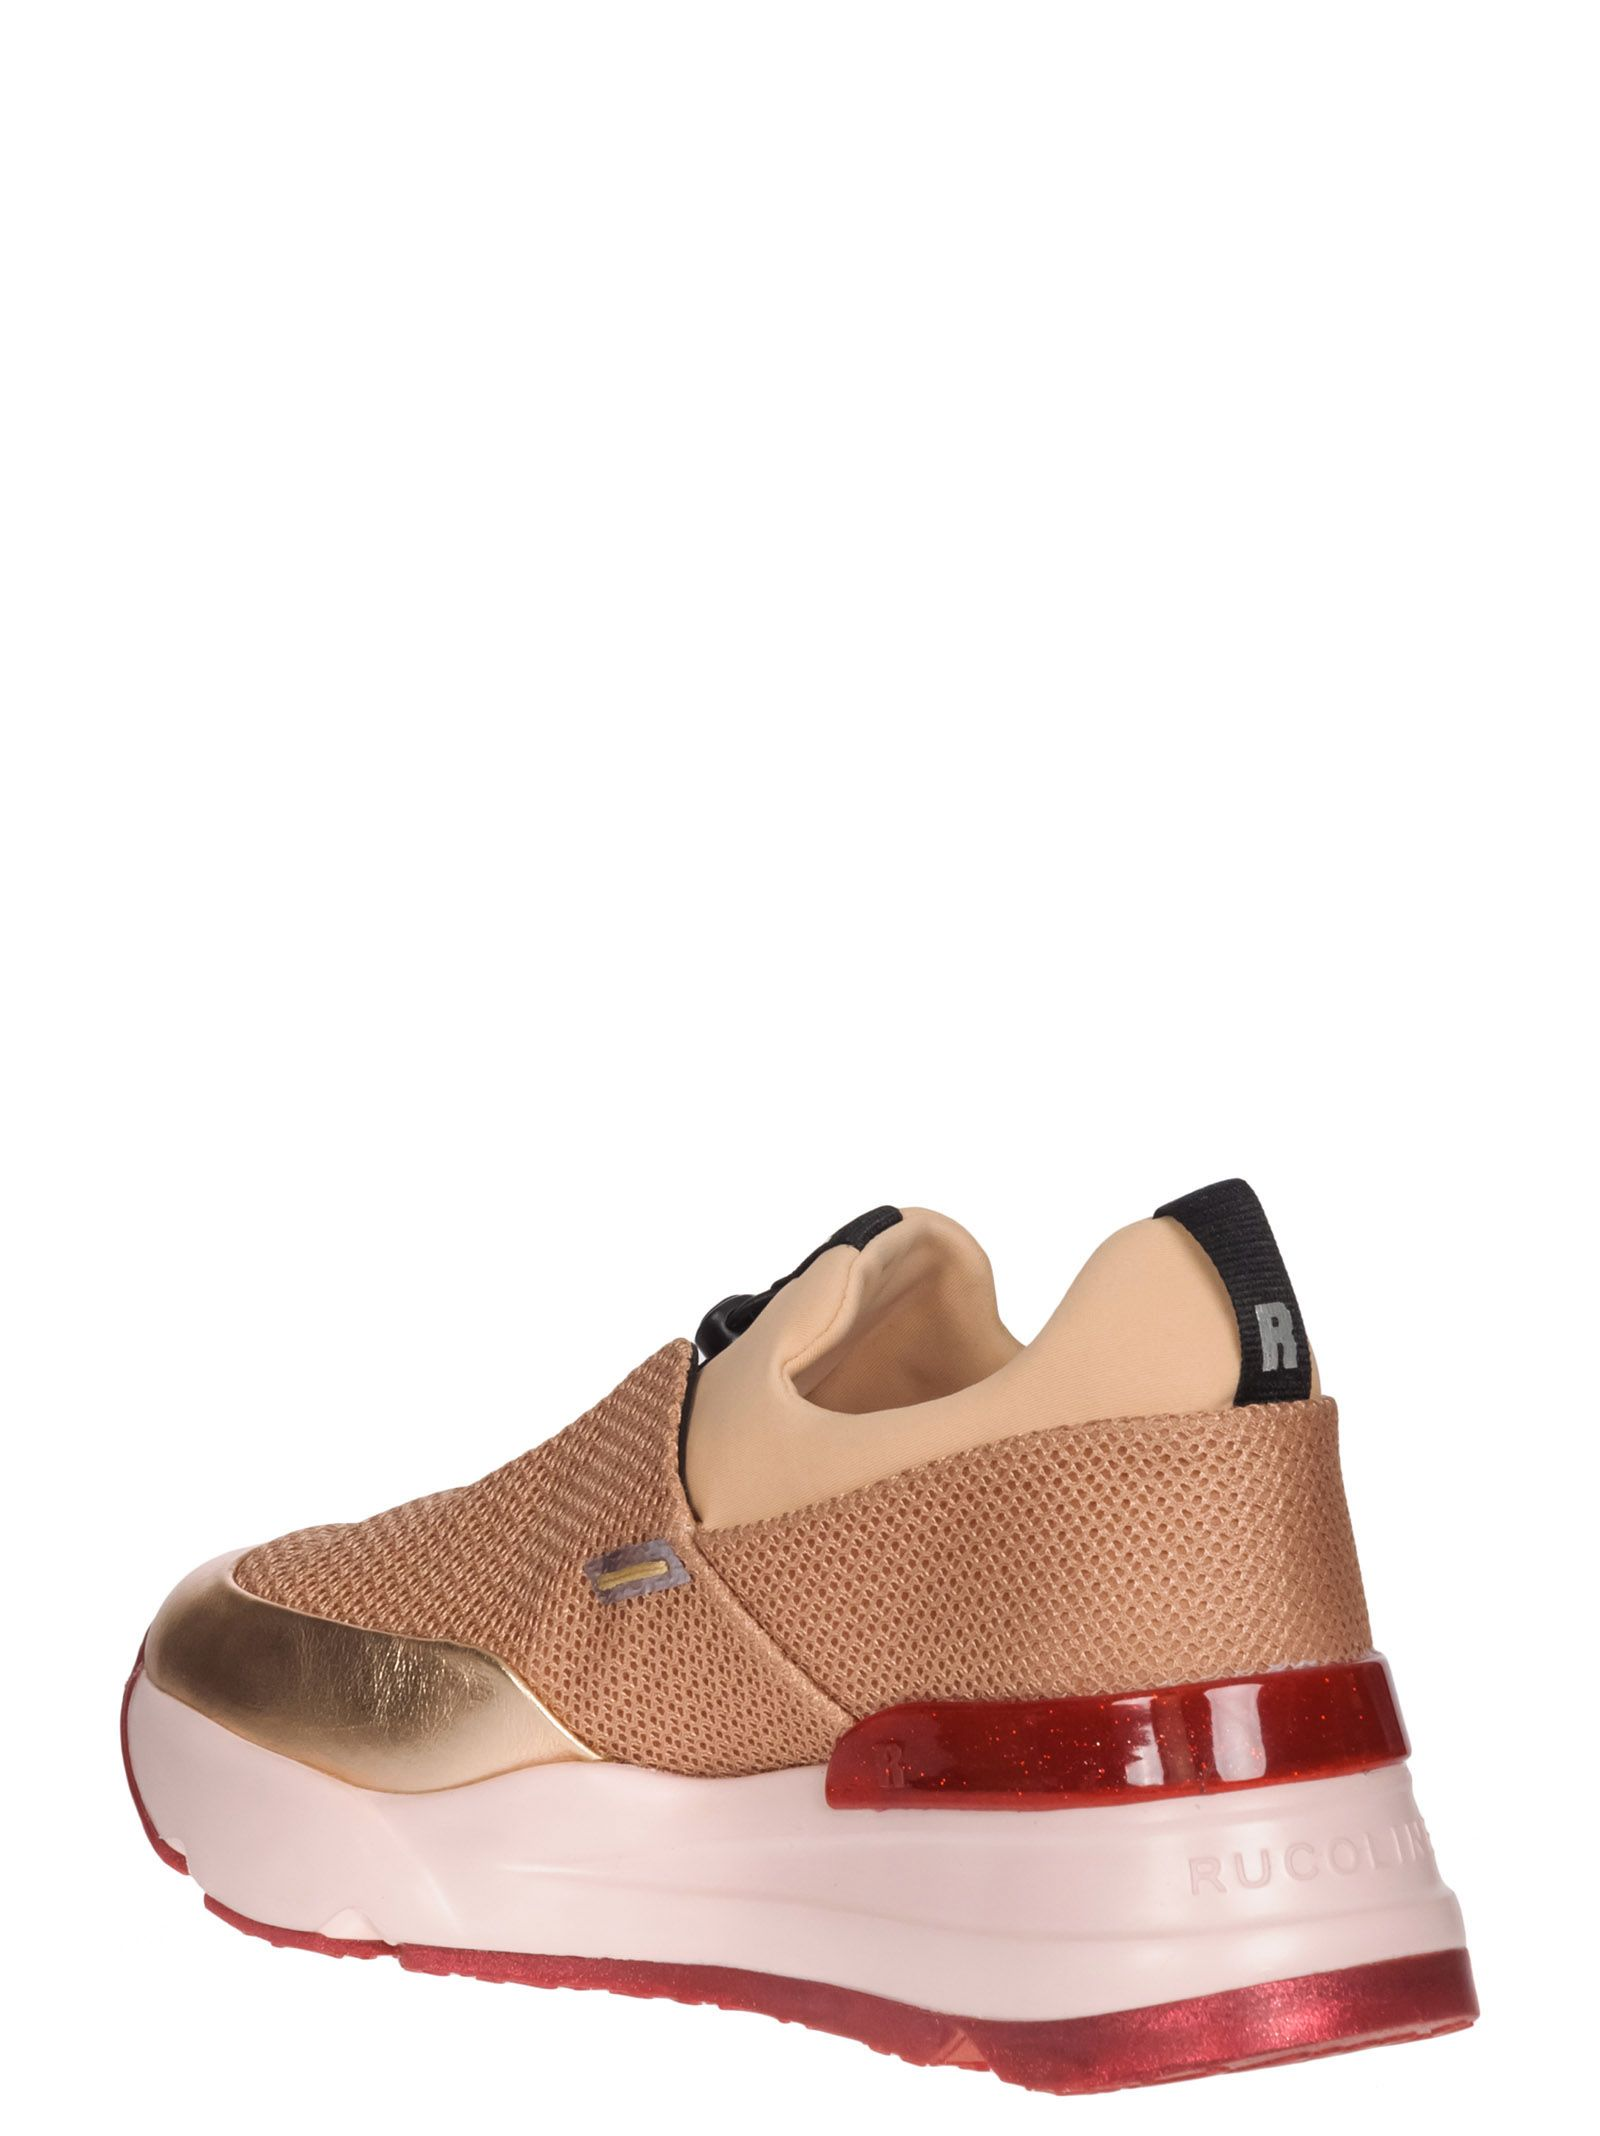 "RUCOLINE Rucoline Sneakers ""Essentiel"" Net And Skin Pink Color in Nude"